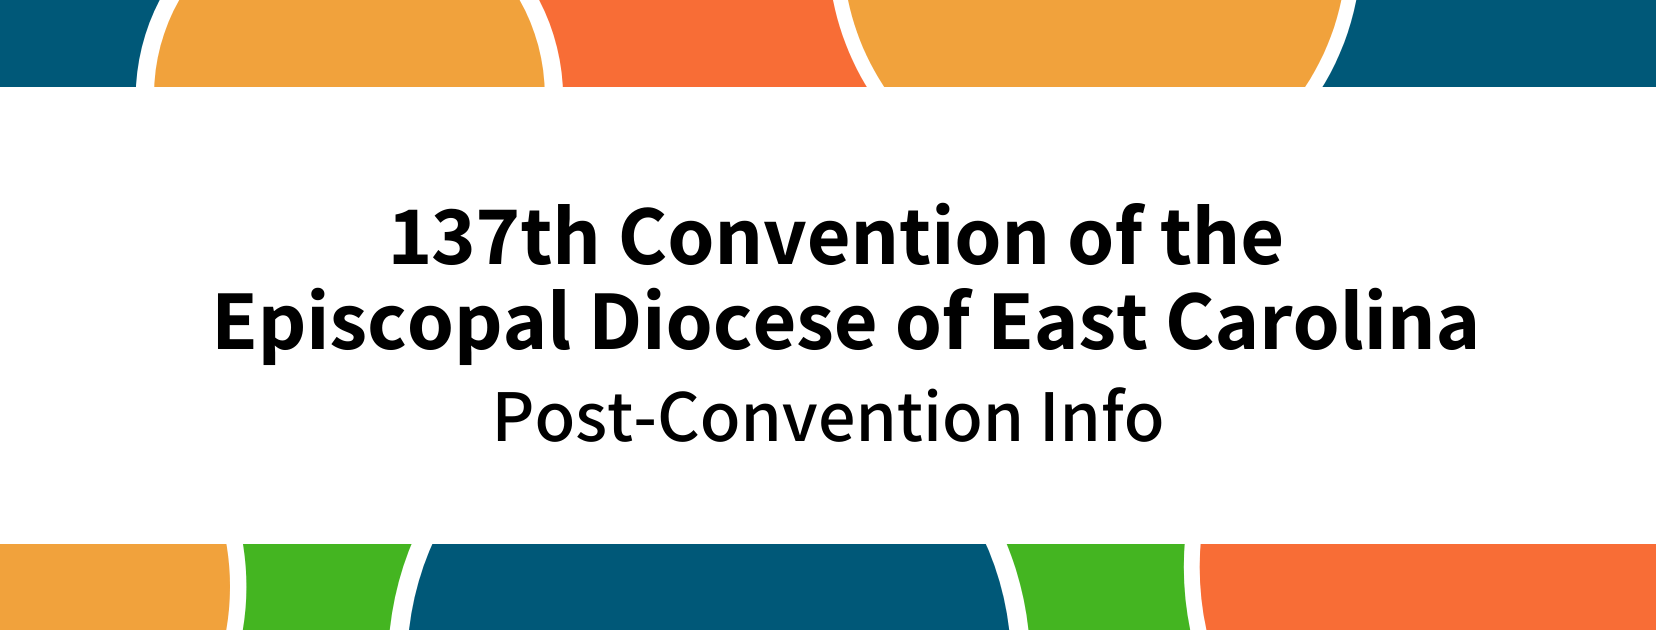 137Th Convention Of The Diocese Of East Carolina | Episcopal With Regard To East Carolina University Holiday Calendar